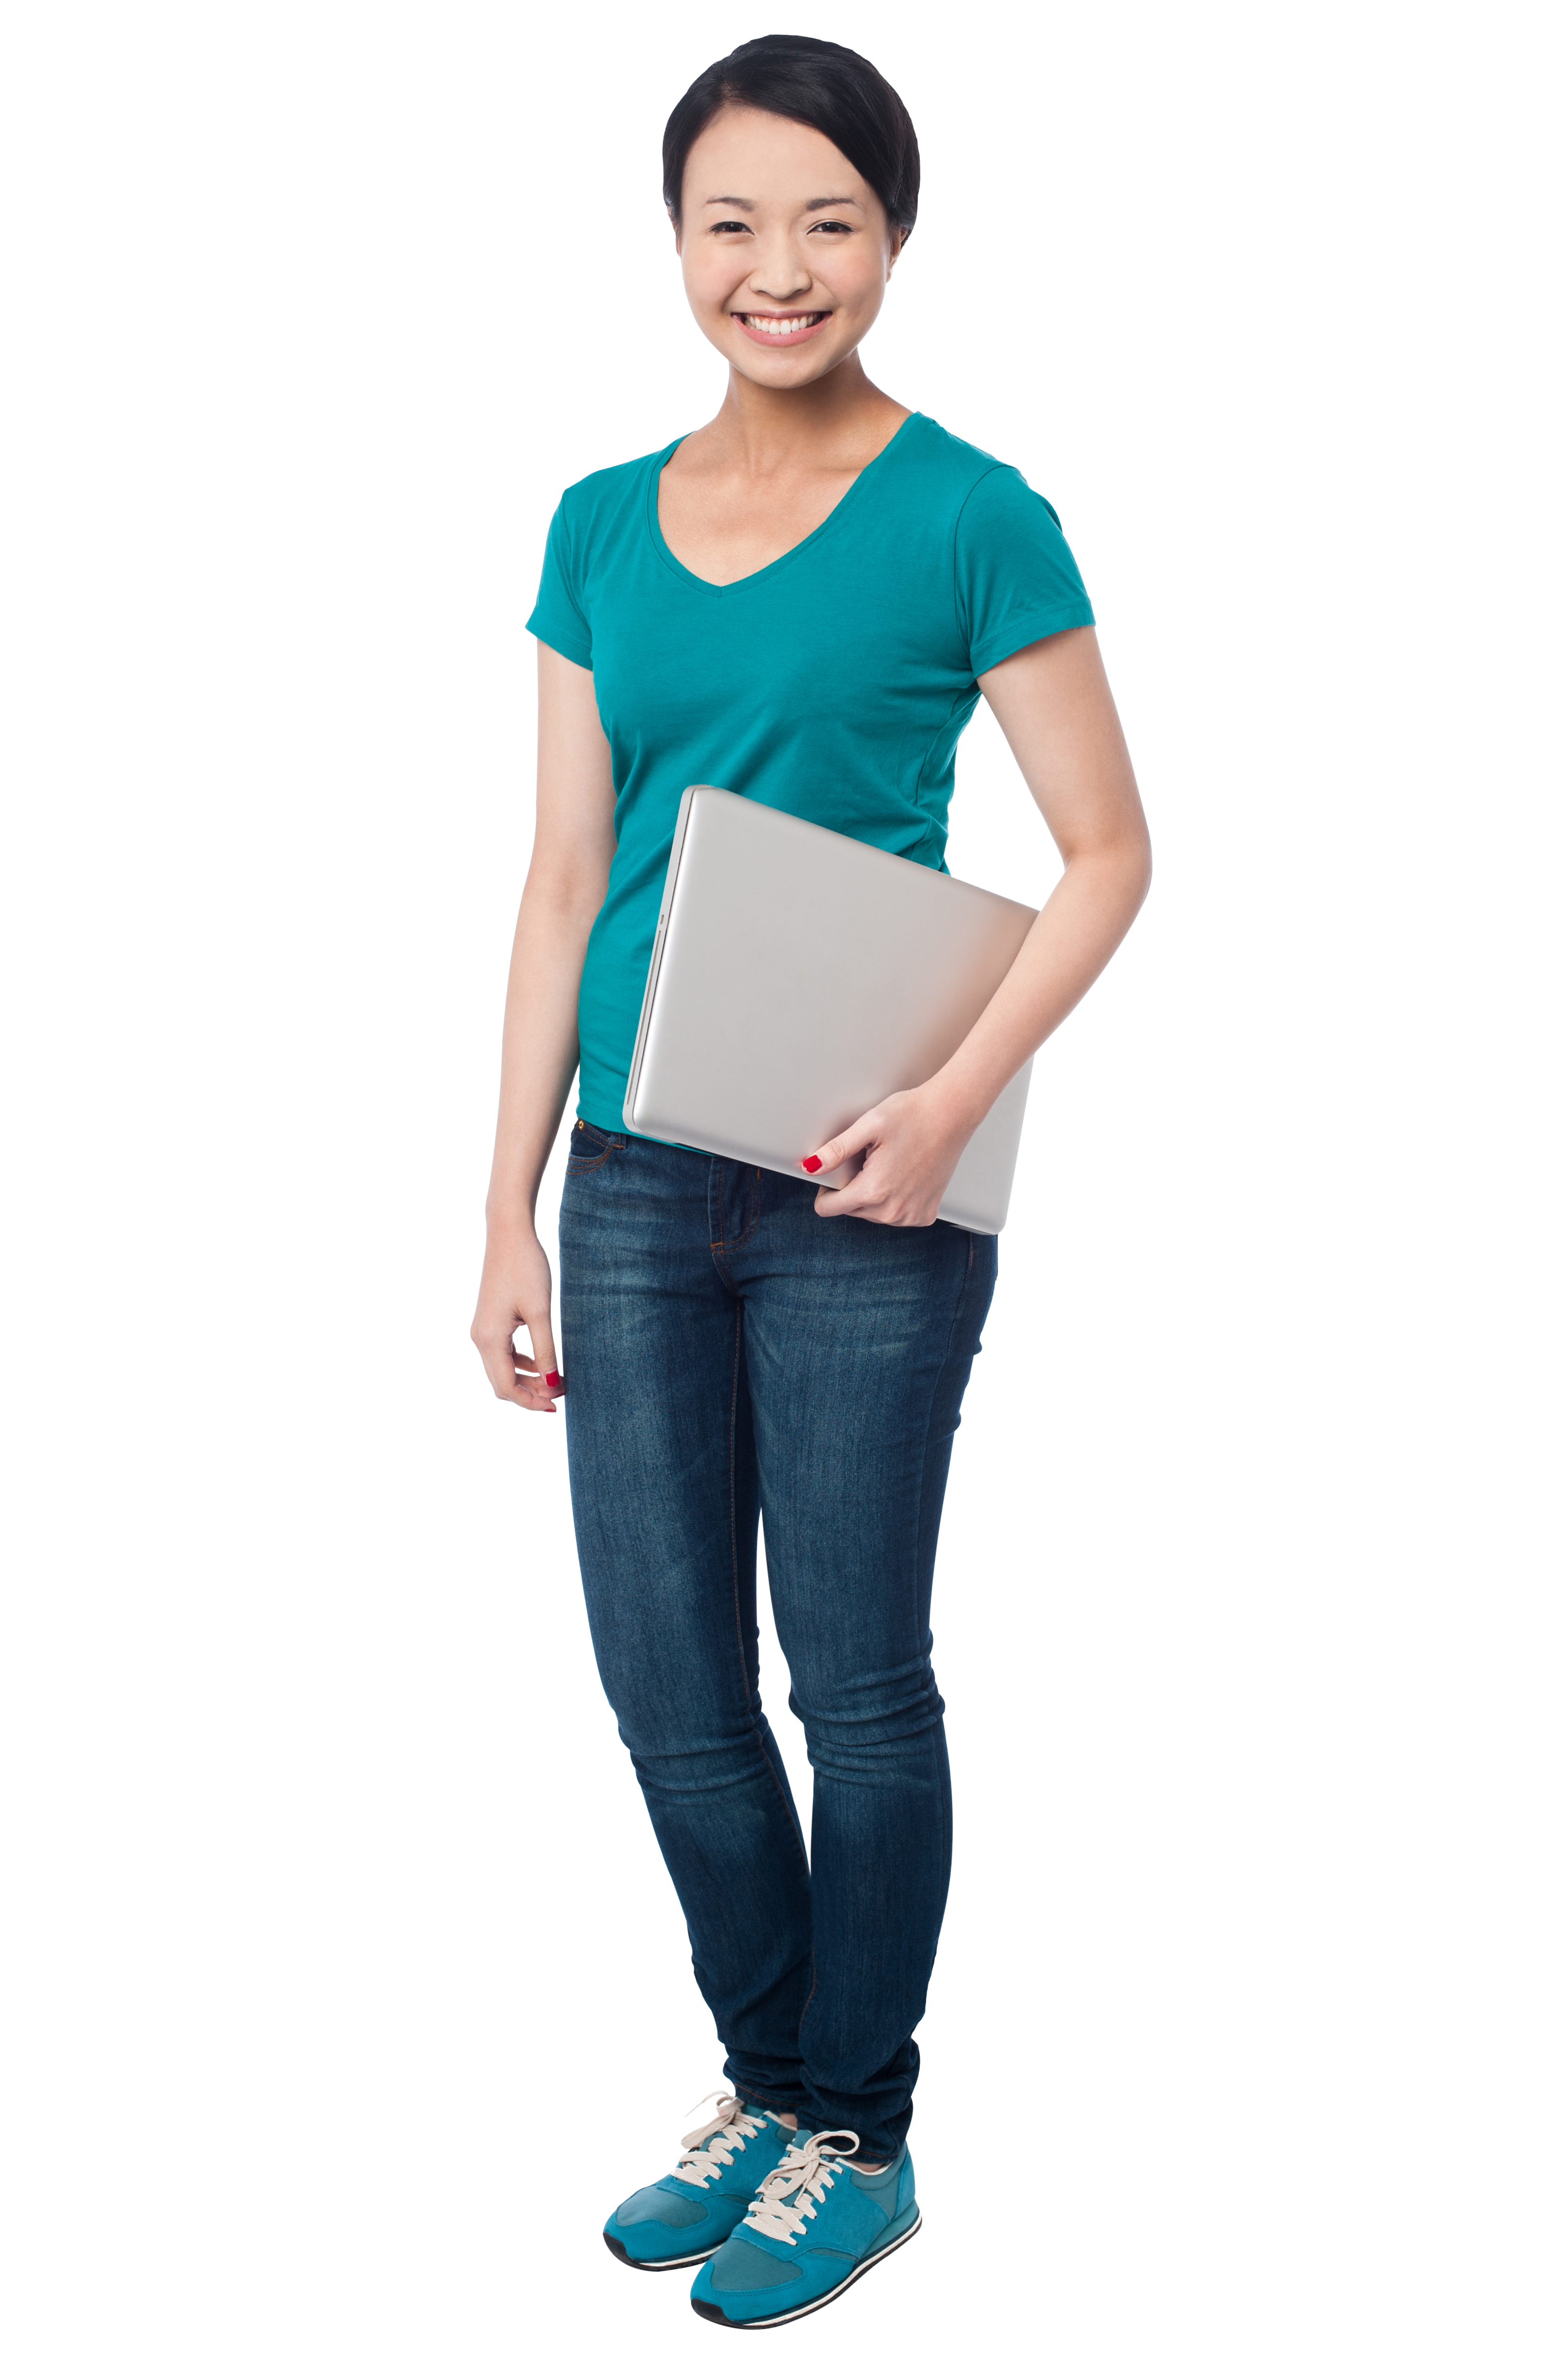 Standing Girl PNG Stock Images.